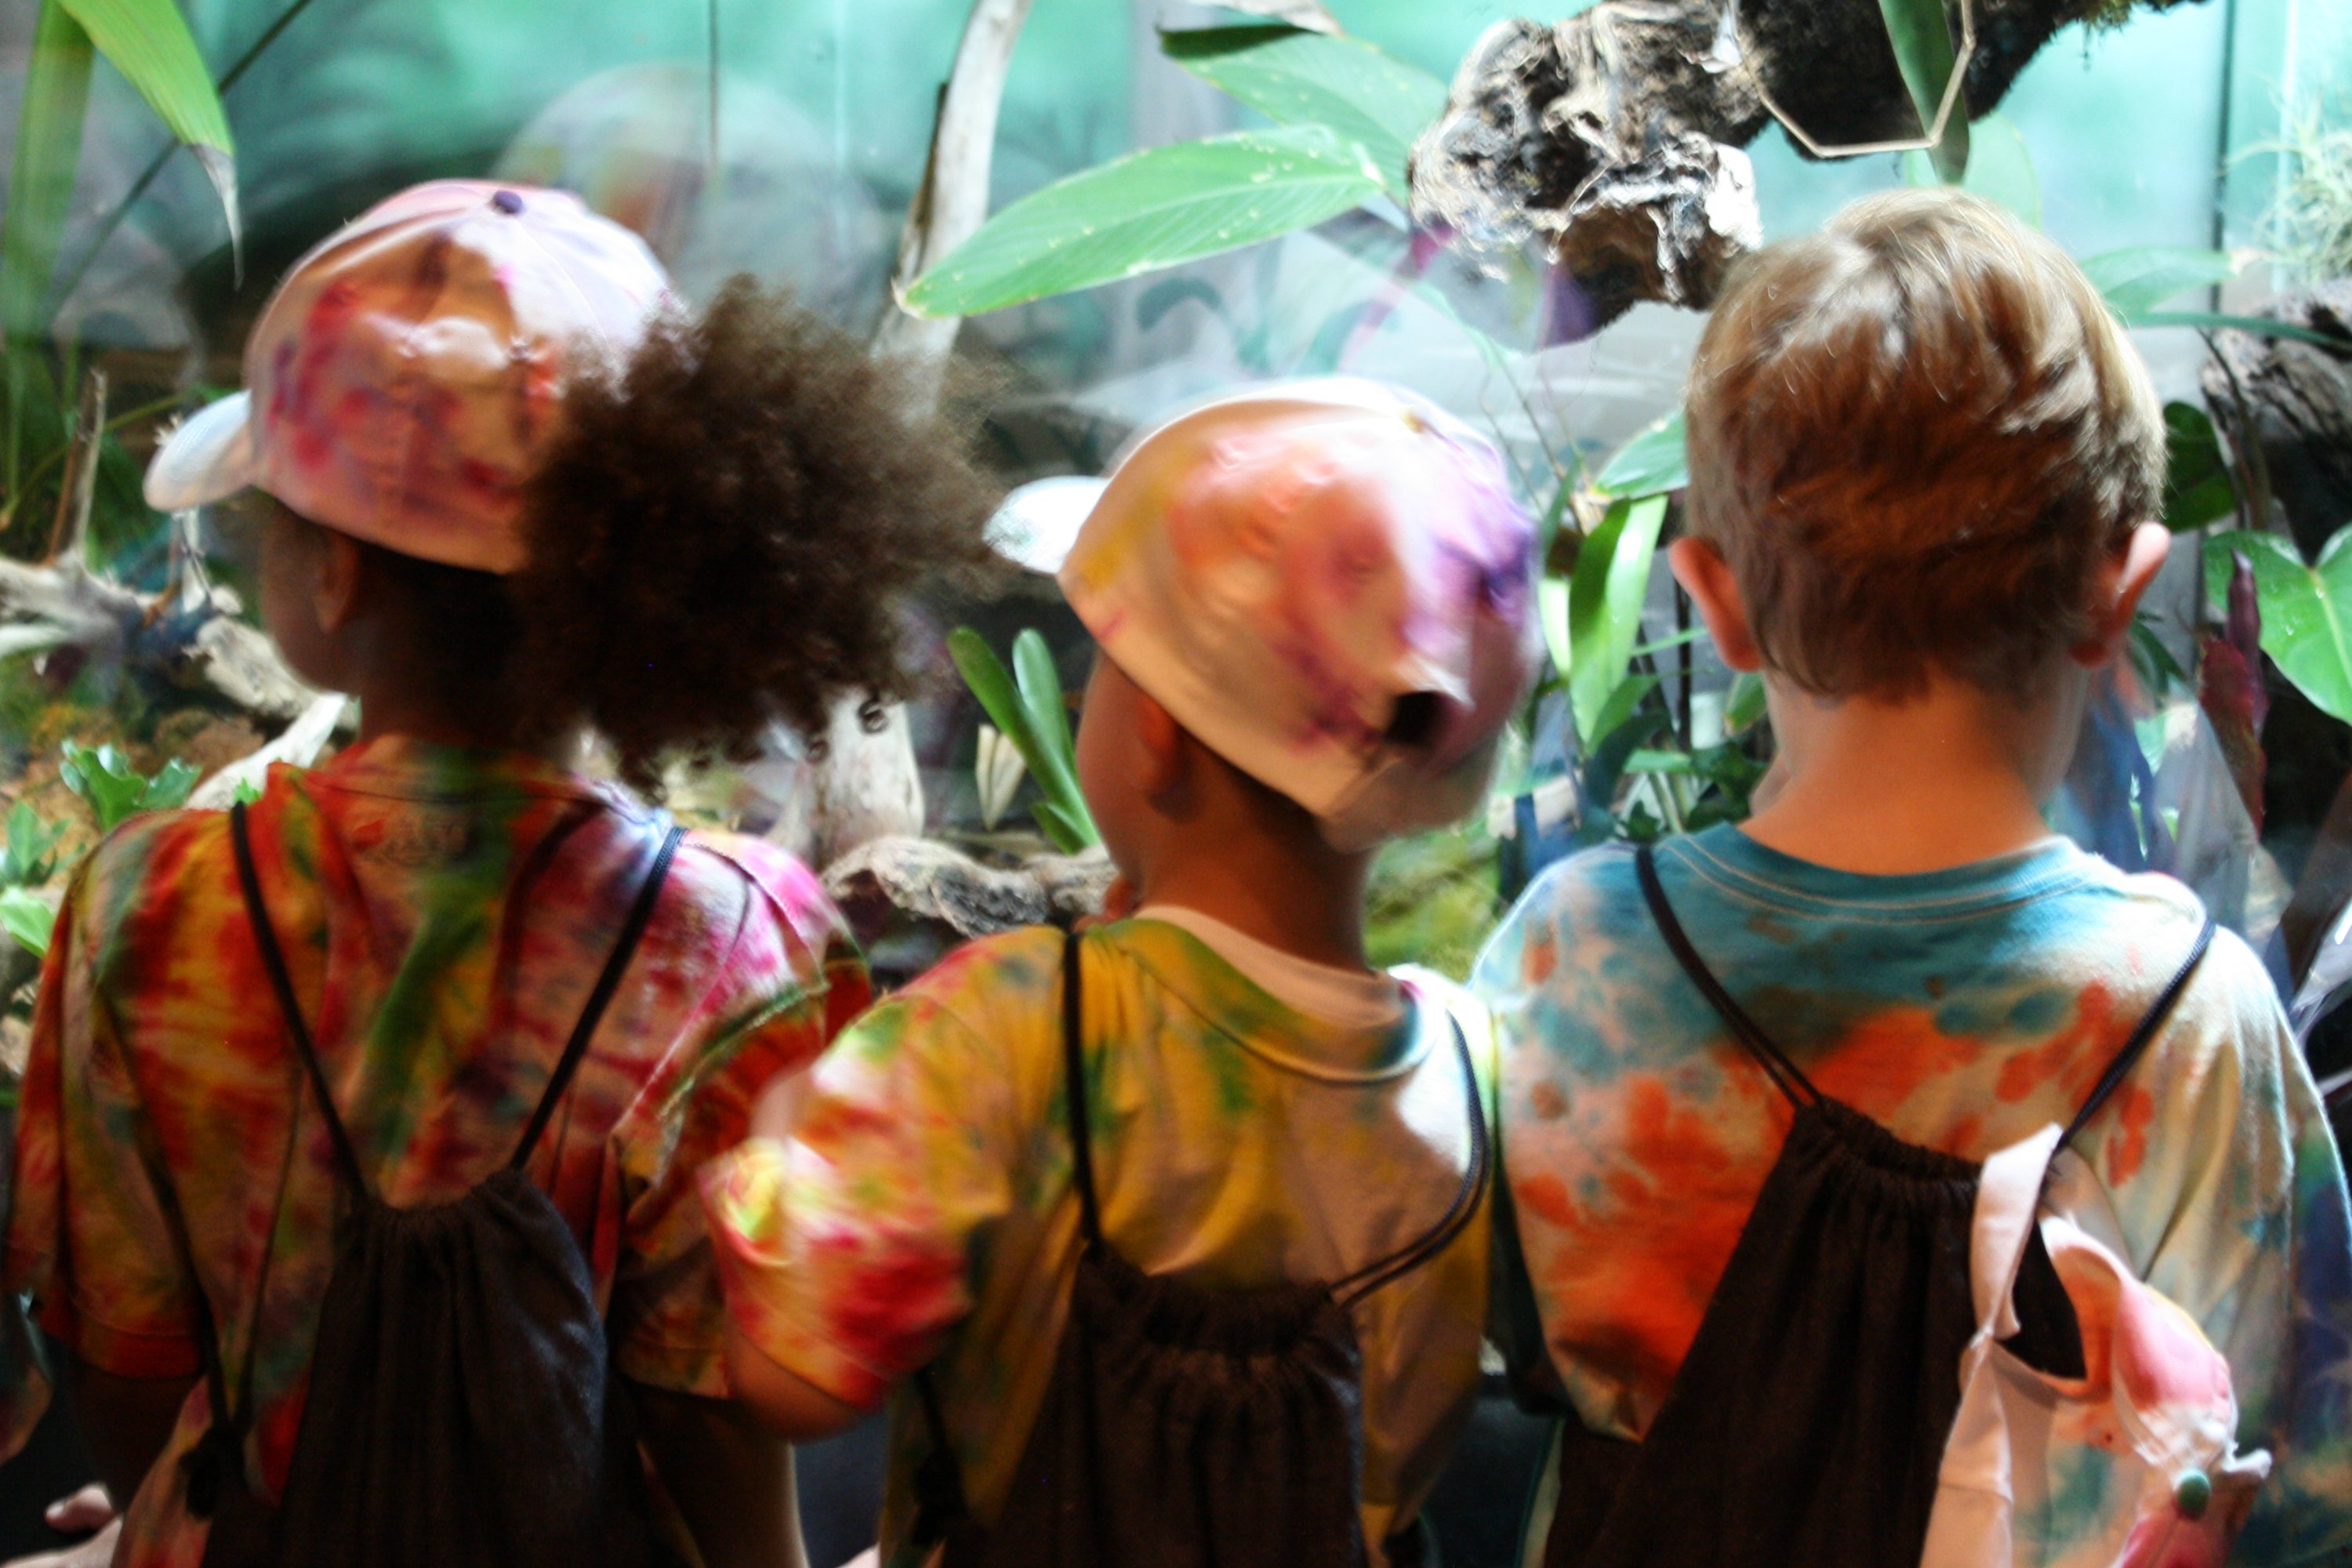 Children Looking At Zoo Exhibit Picture Free Photograph